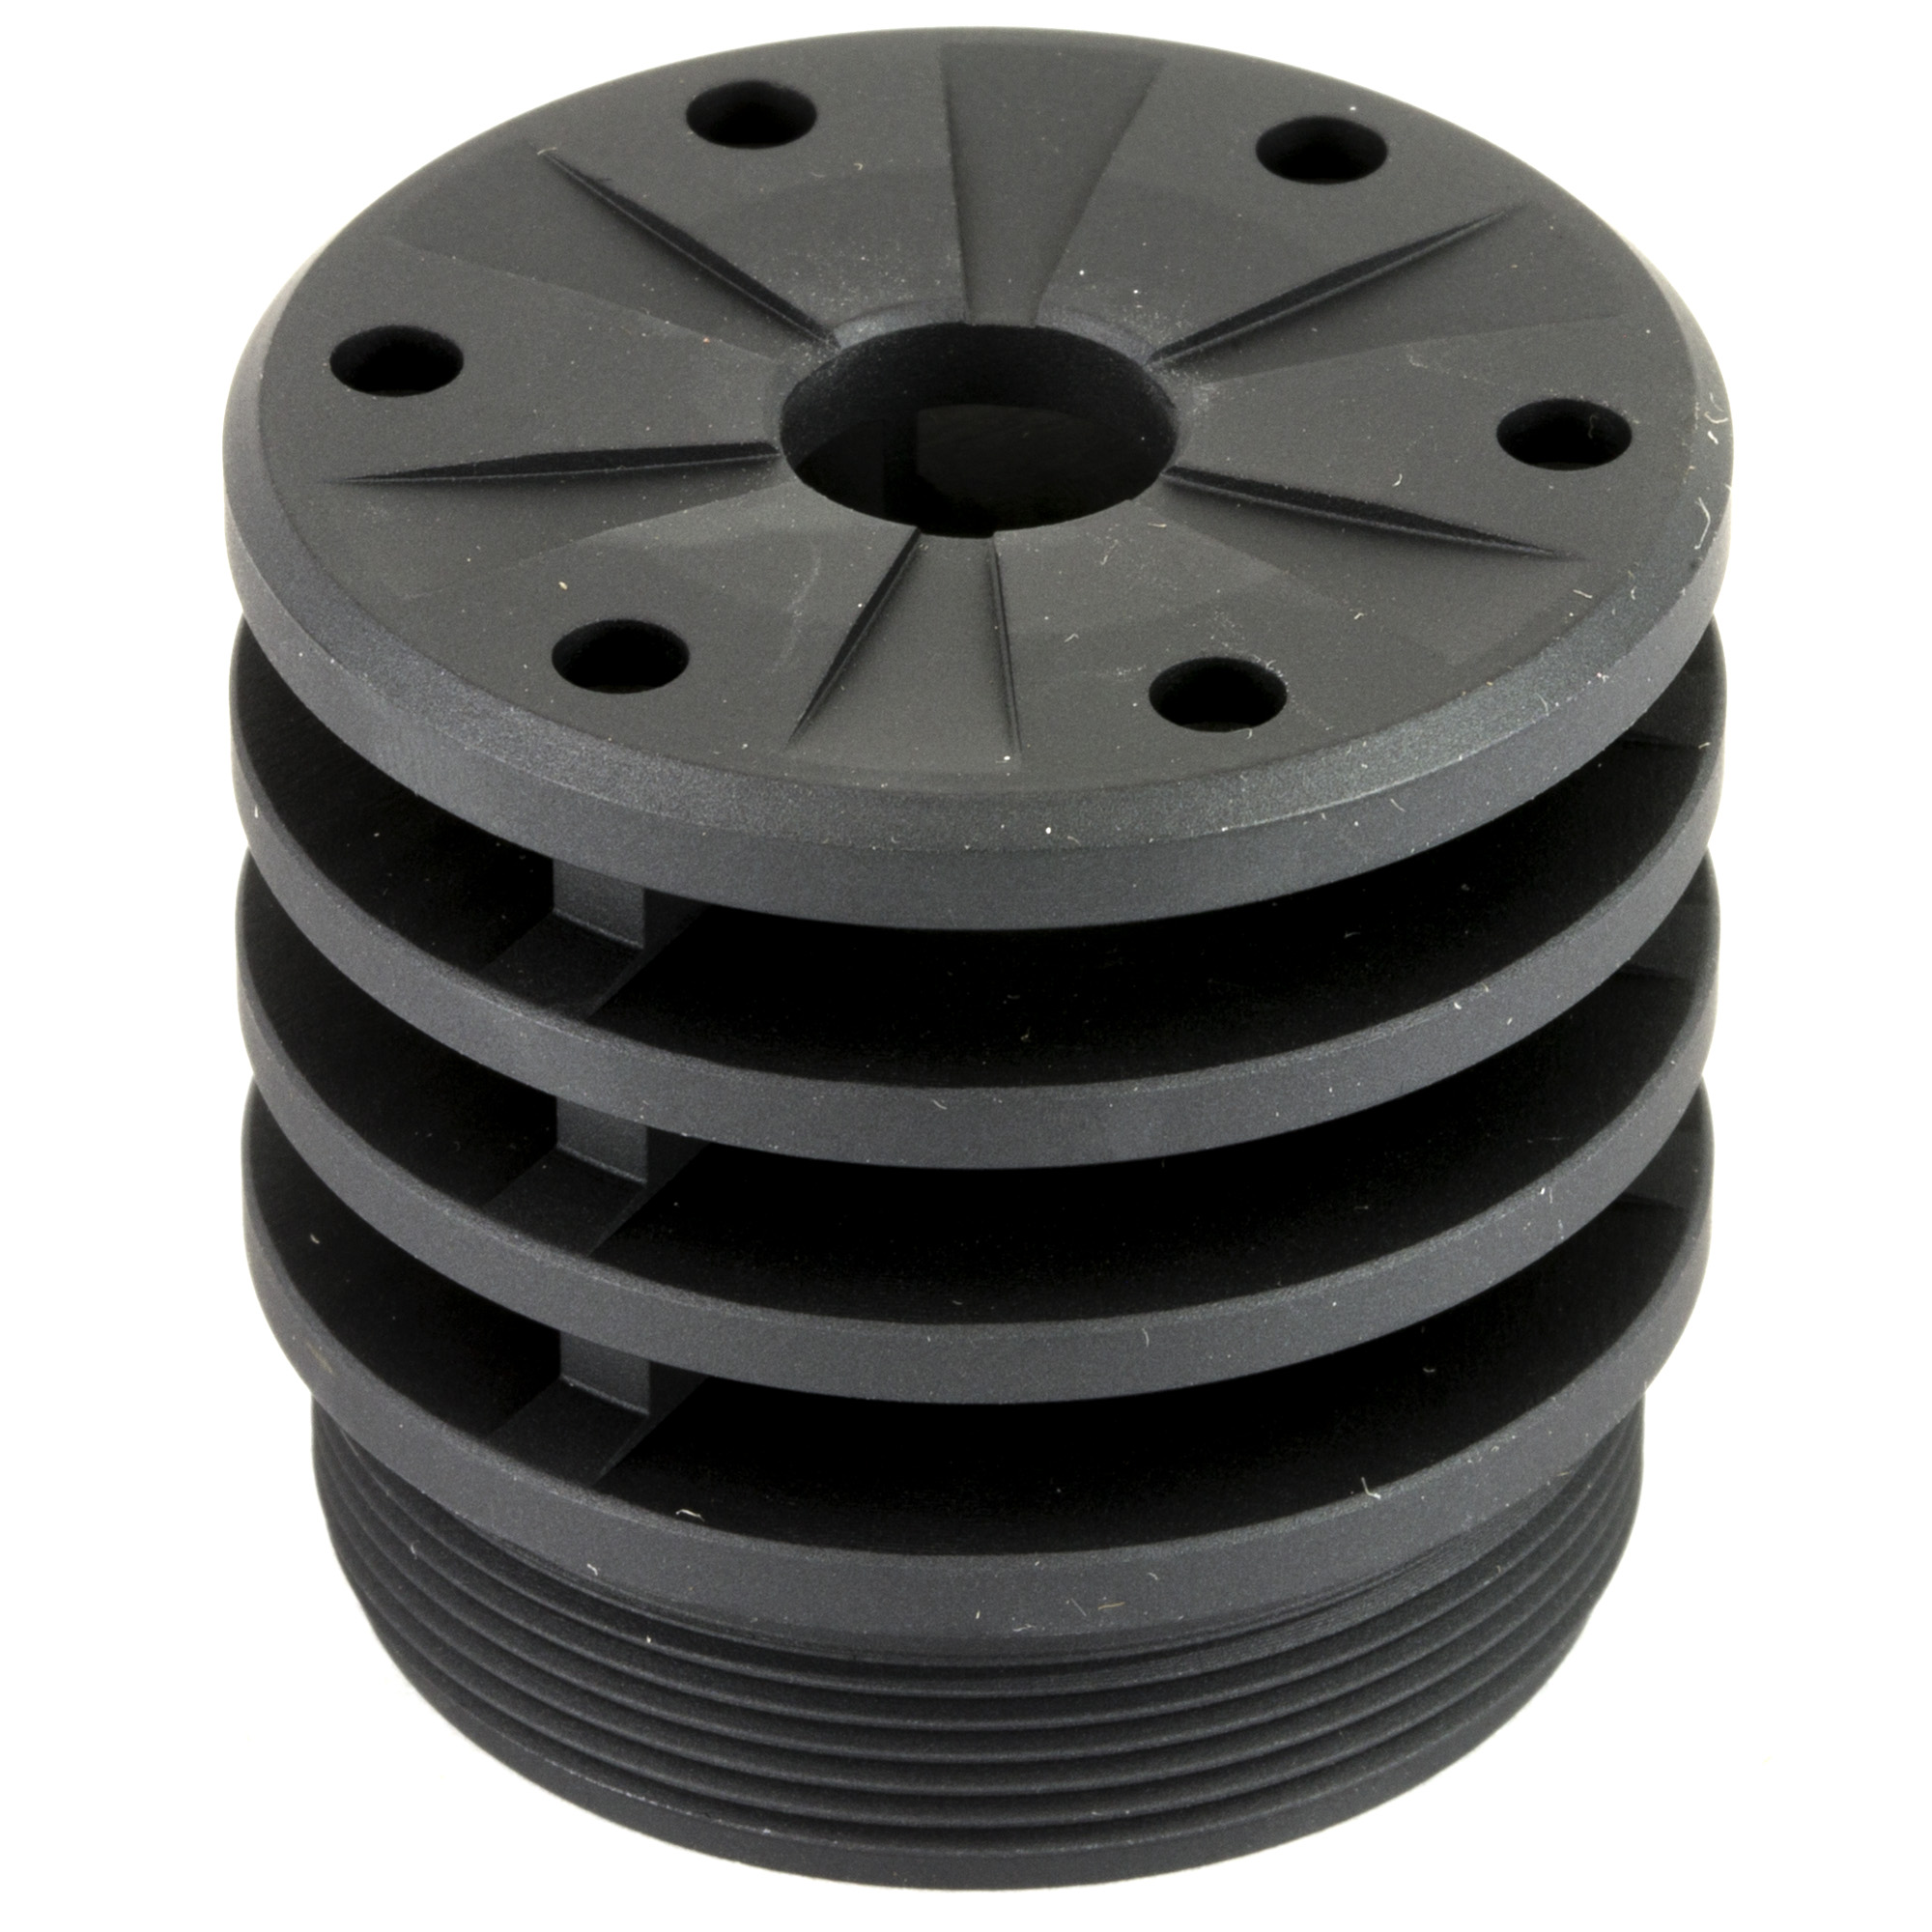 """Replace the Front Cap on your Omega 300 or Hybrid 46 with a SilencerCo Bravo Anchor Brake. The Anchor brake improves sound reduction and mitigates recoil"""" allowing the shooter to re-acquire the target for faster follow-up shots. Bravo accessories are compatible with Omega 300"""" Hybrid 46"""" and Harvester 338."""